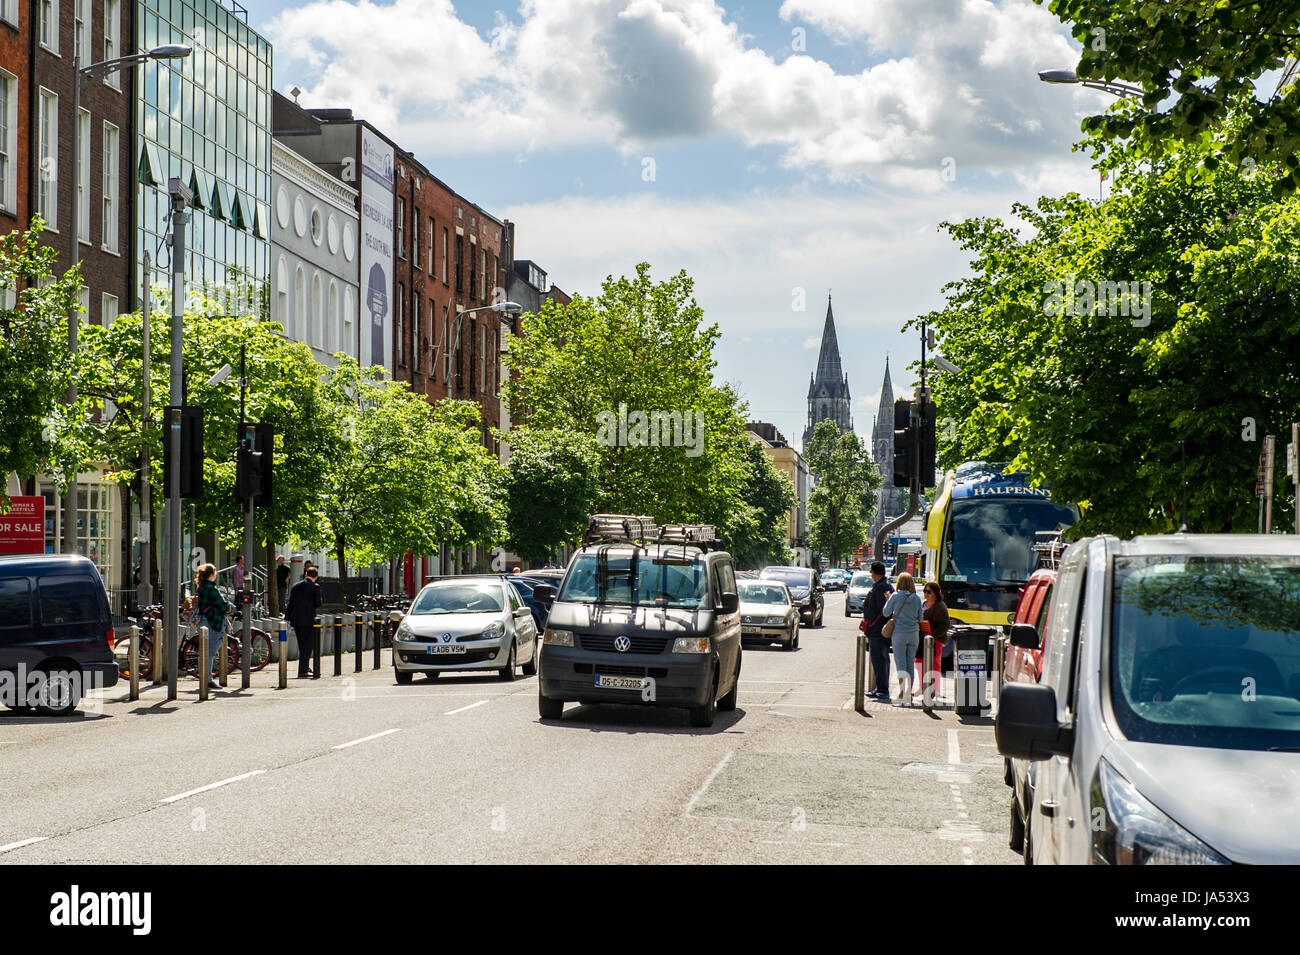 South Mall Street, Cork, Ireland with vehicles, cars, pedestrians, copy space, offices on a sunny Friday. - Stock Image